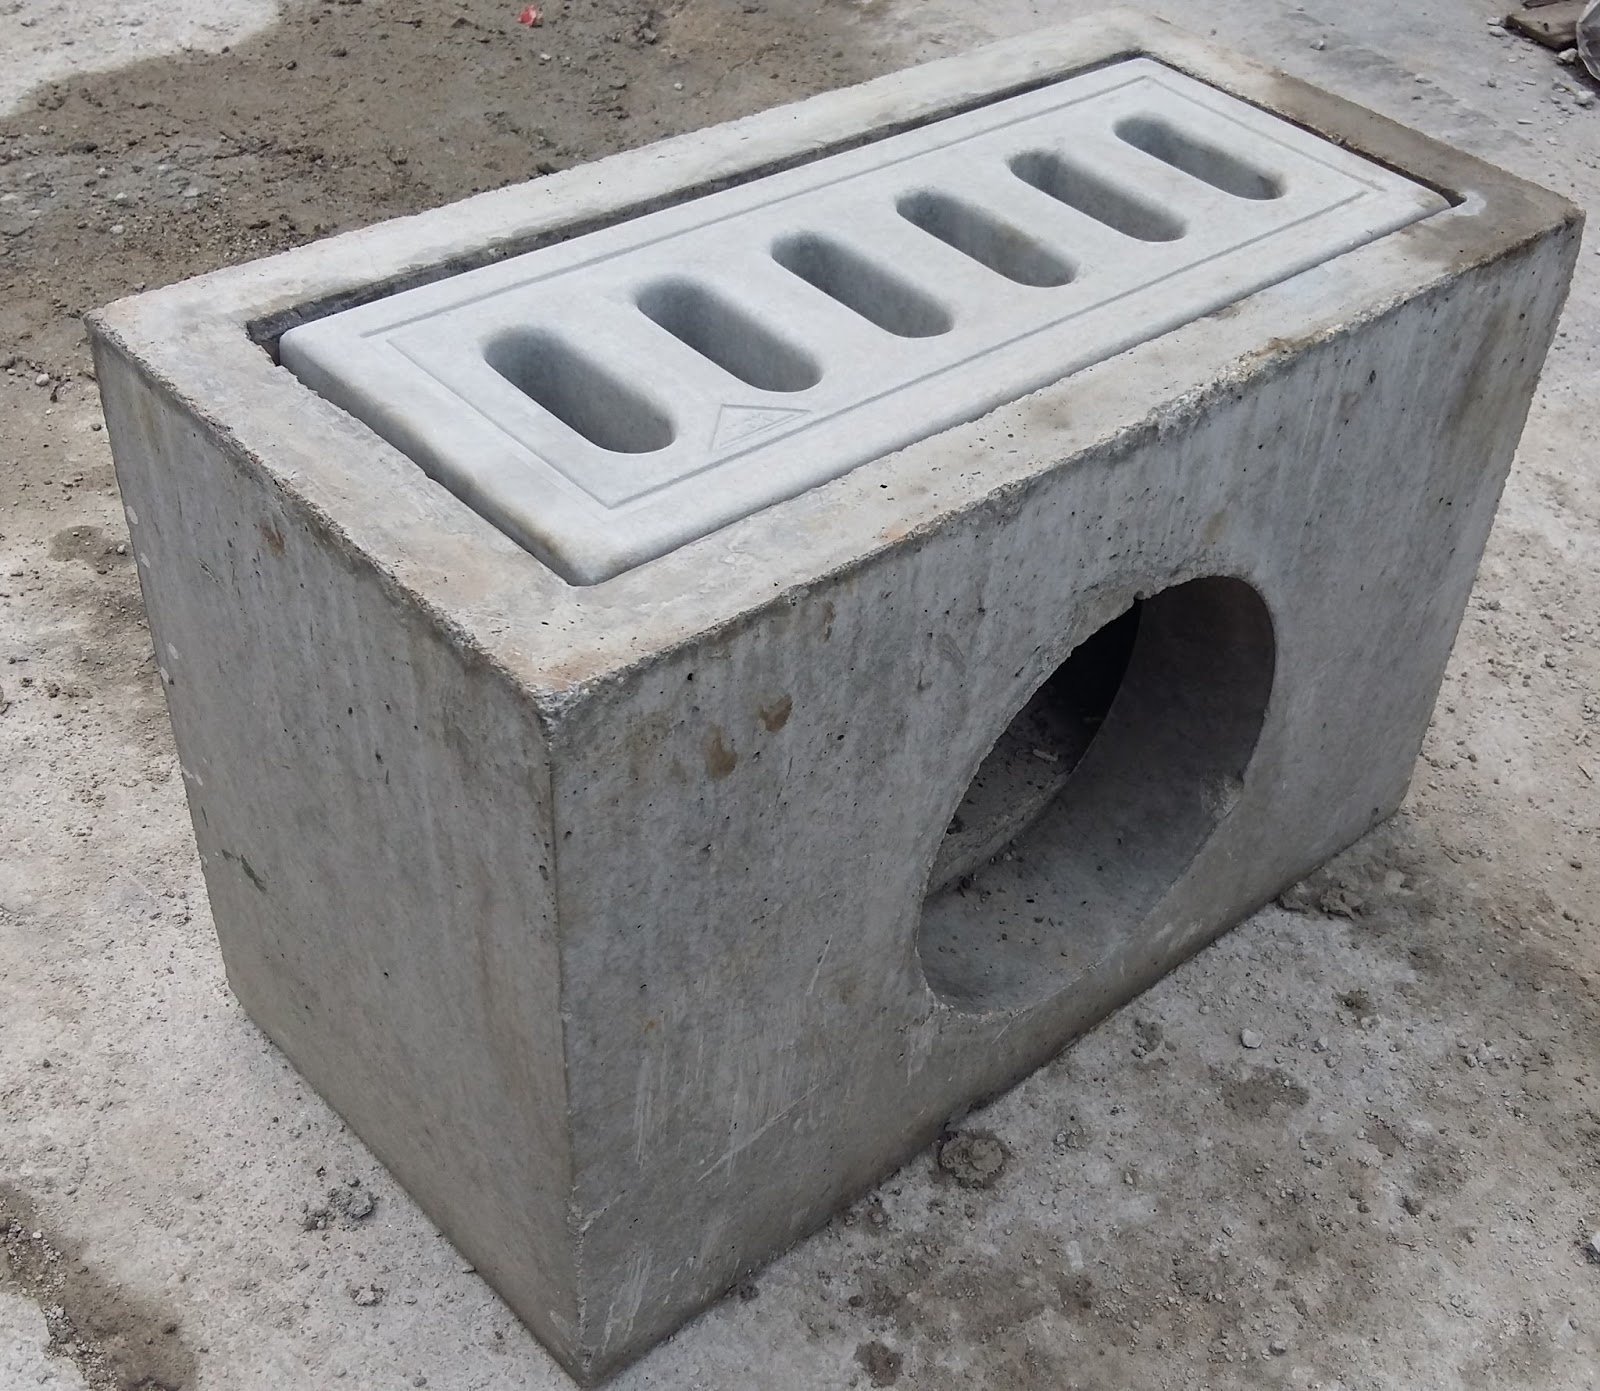 prestressed concrete Prestressed concrete: prestressed concrete, concrete reinforced by either pretensioning or posttensioning, allowing it to carry a greater load or span a greater.